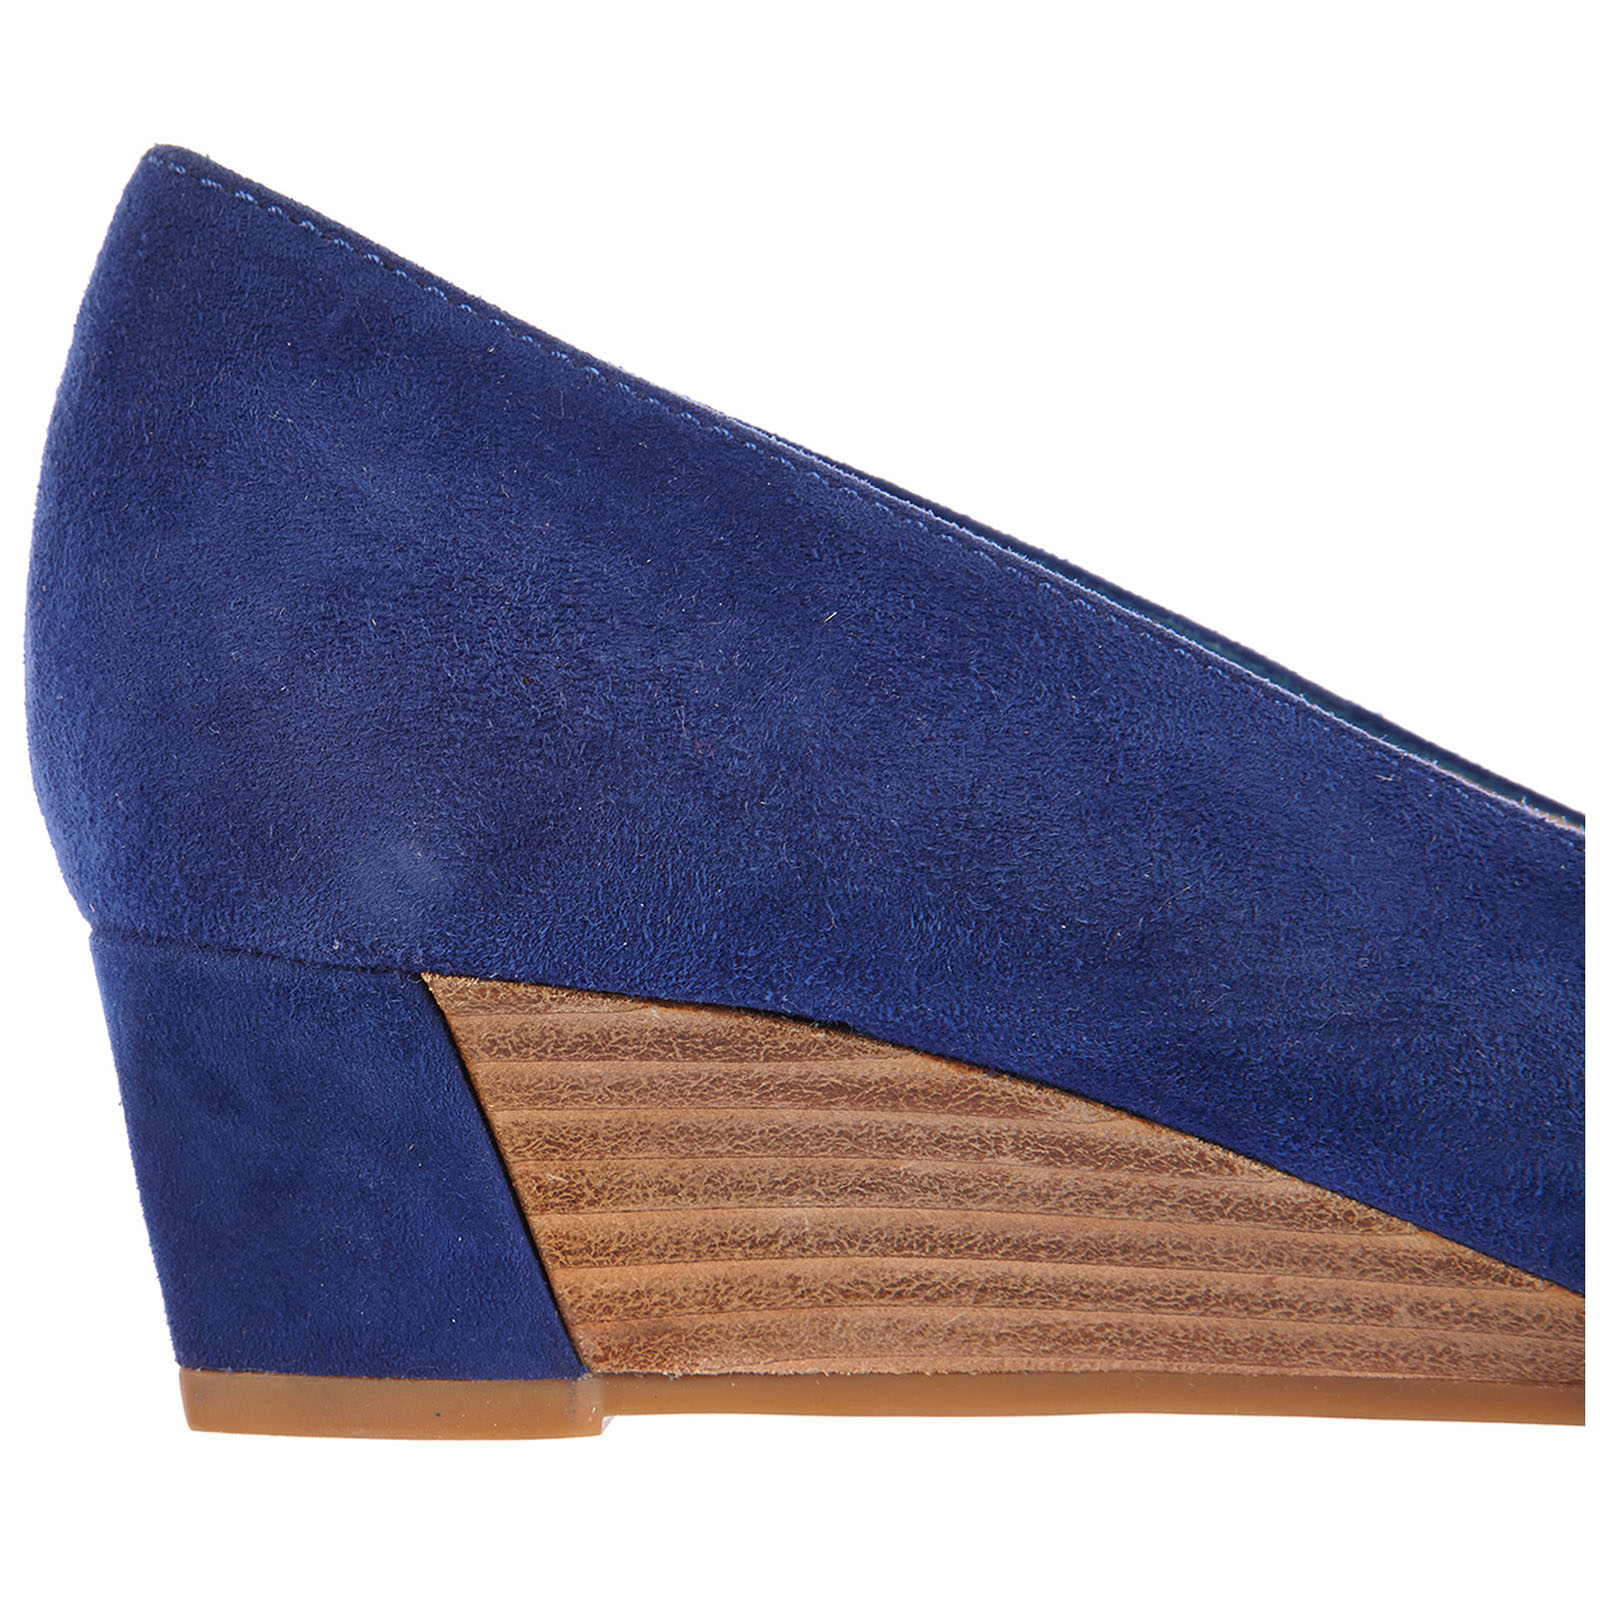 Women's suede shoes wedges sandals